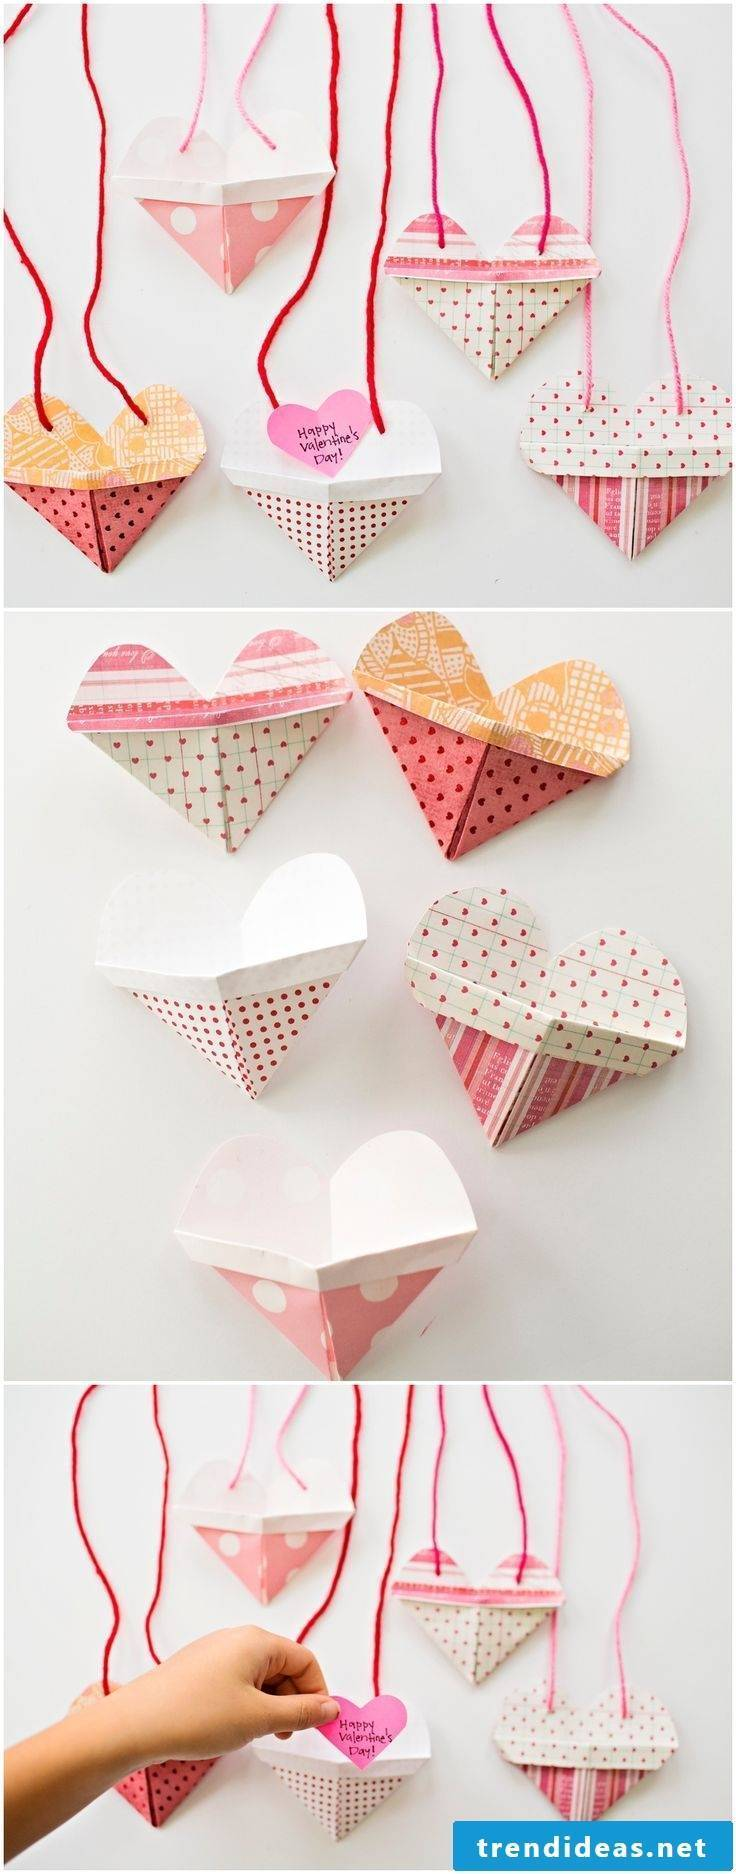 Envelope fold Valentine's Day